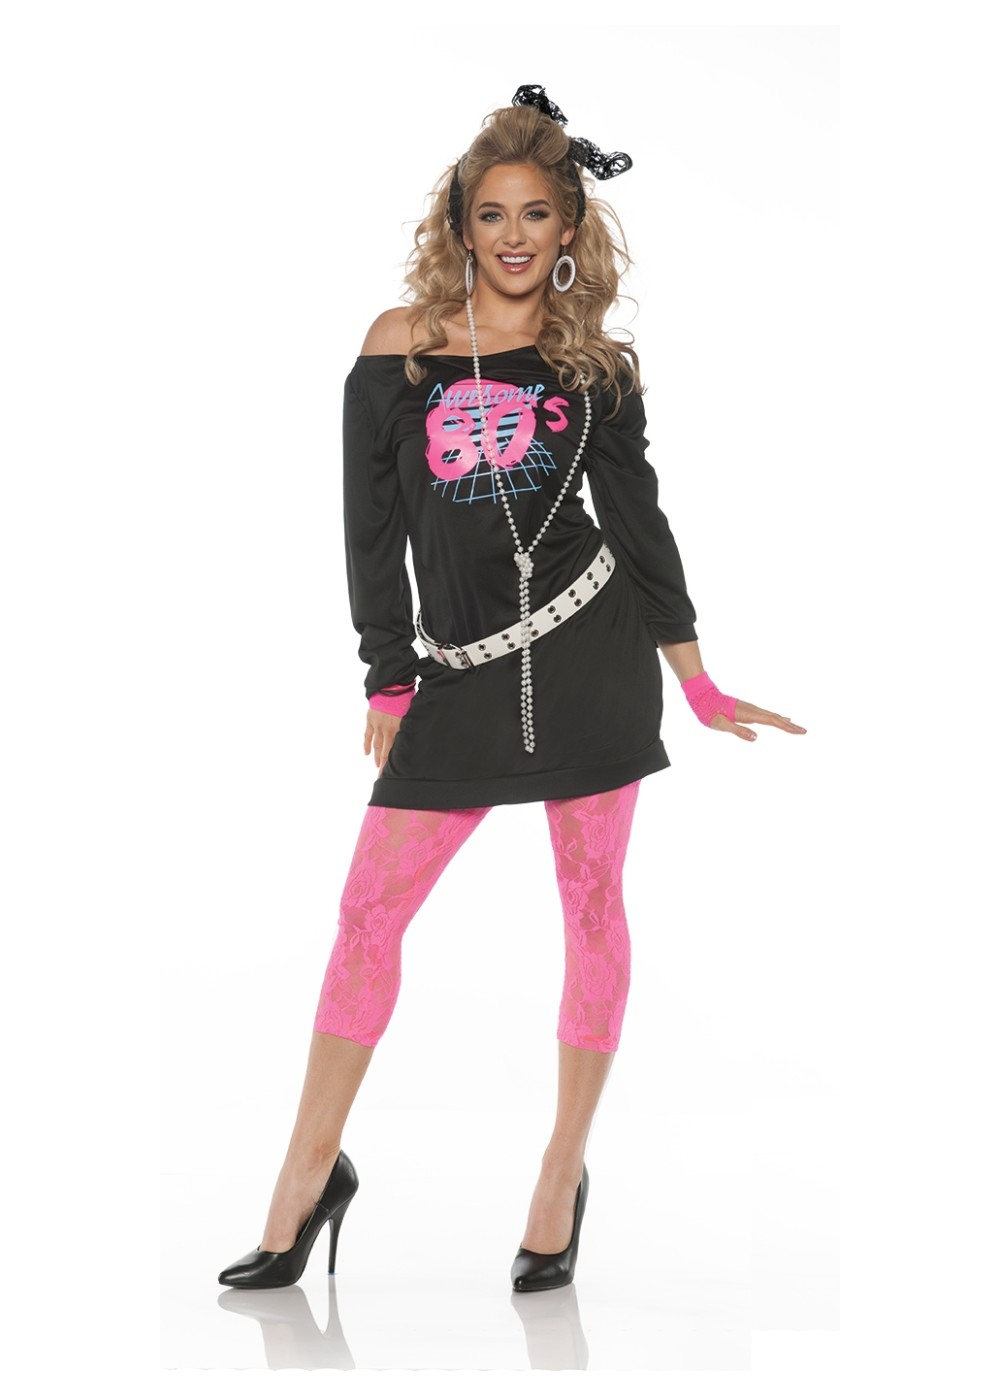 80s Mini Dress Women Costume - 1980s Costumes 659da709c3